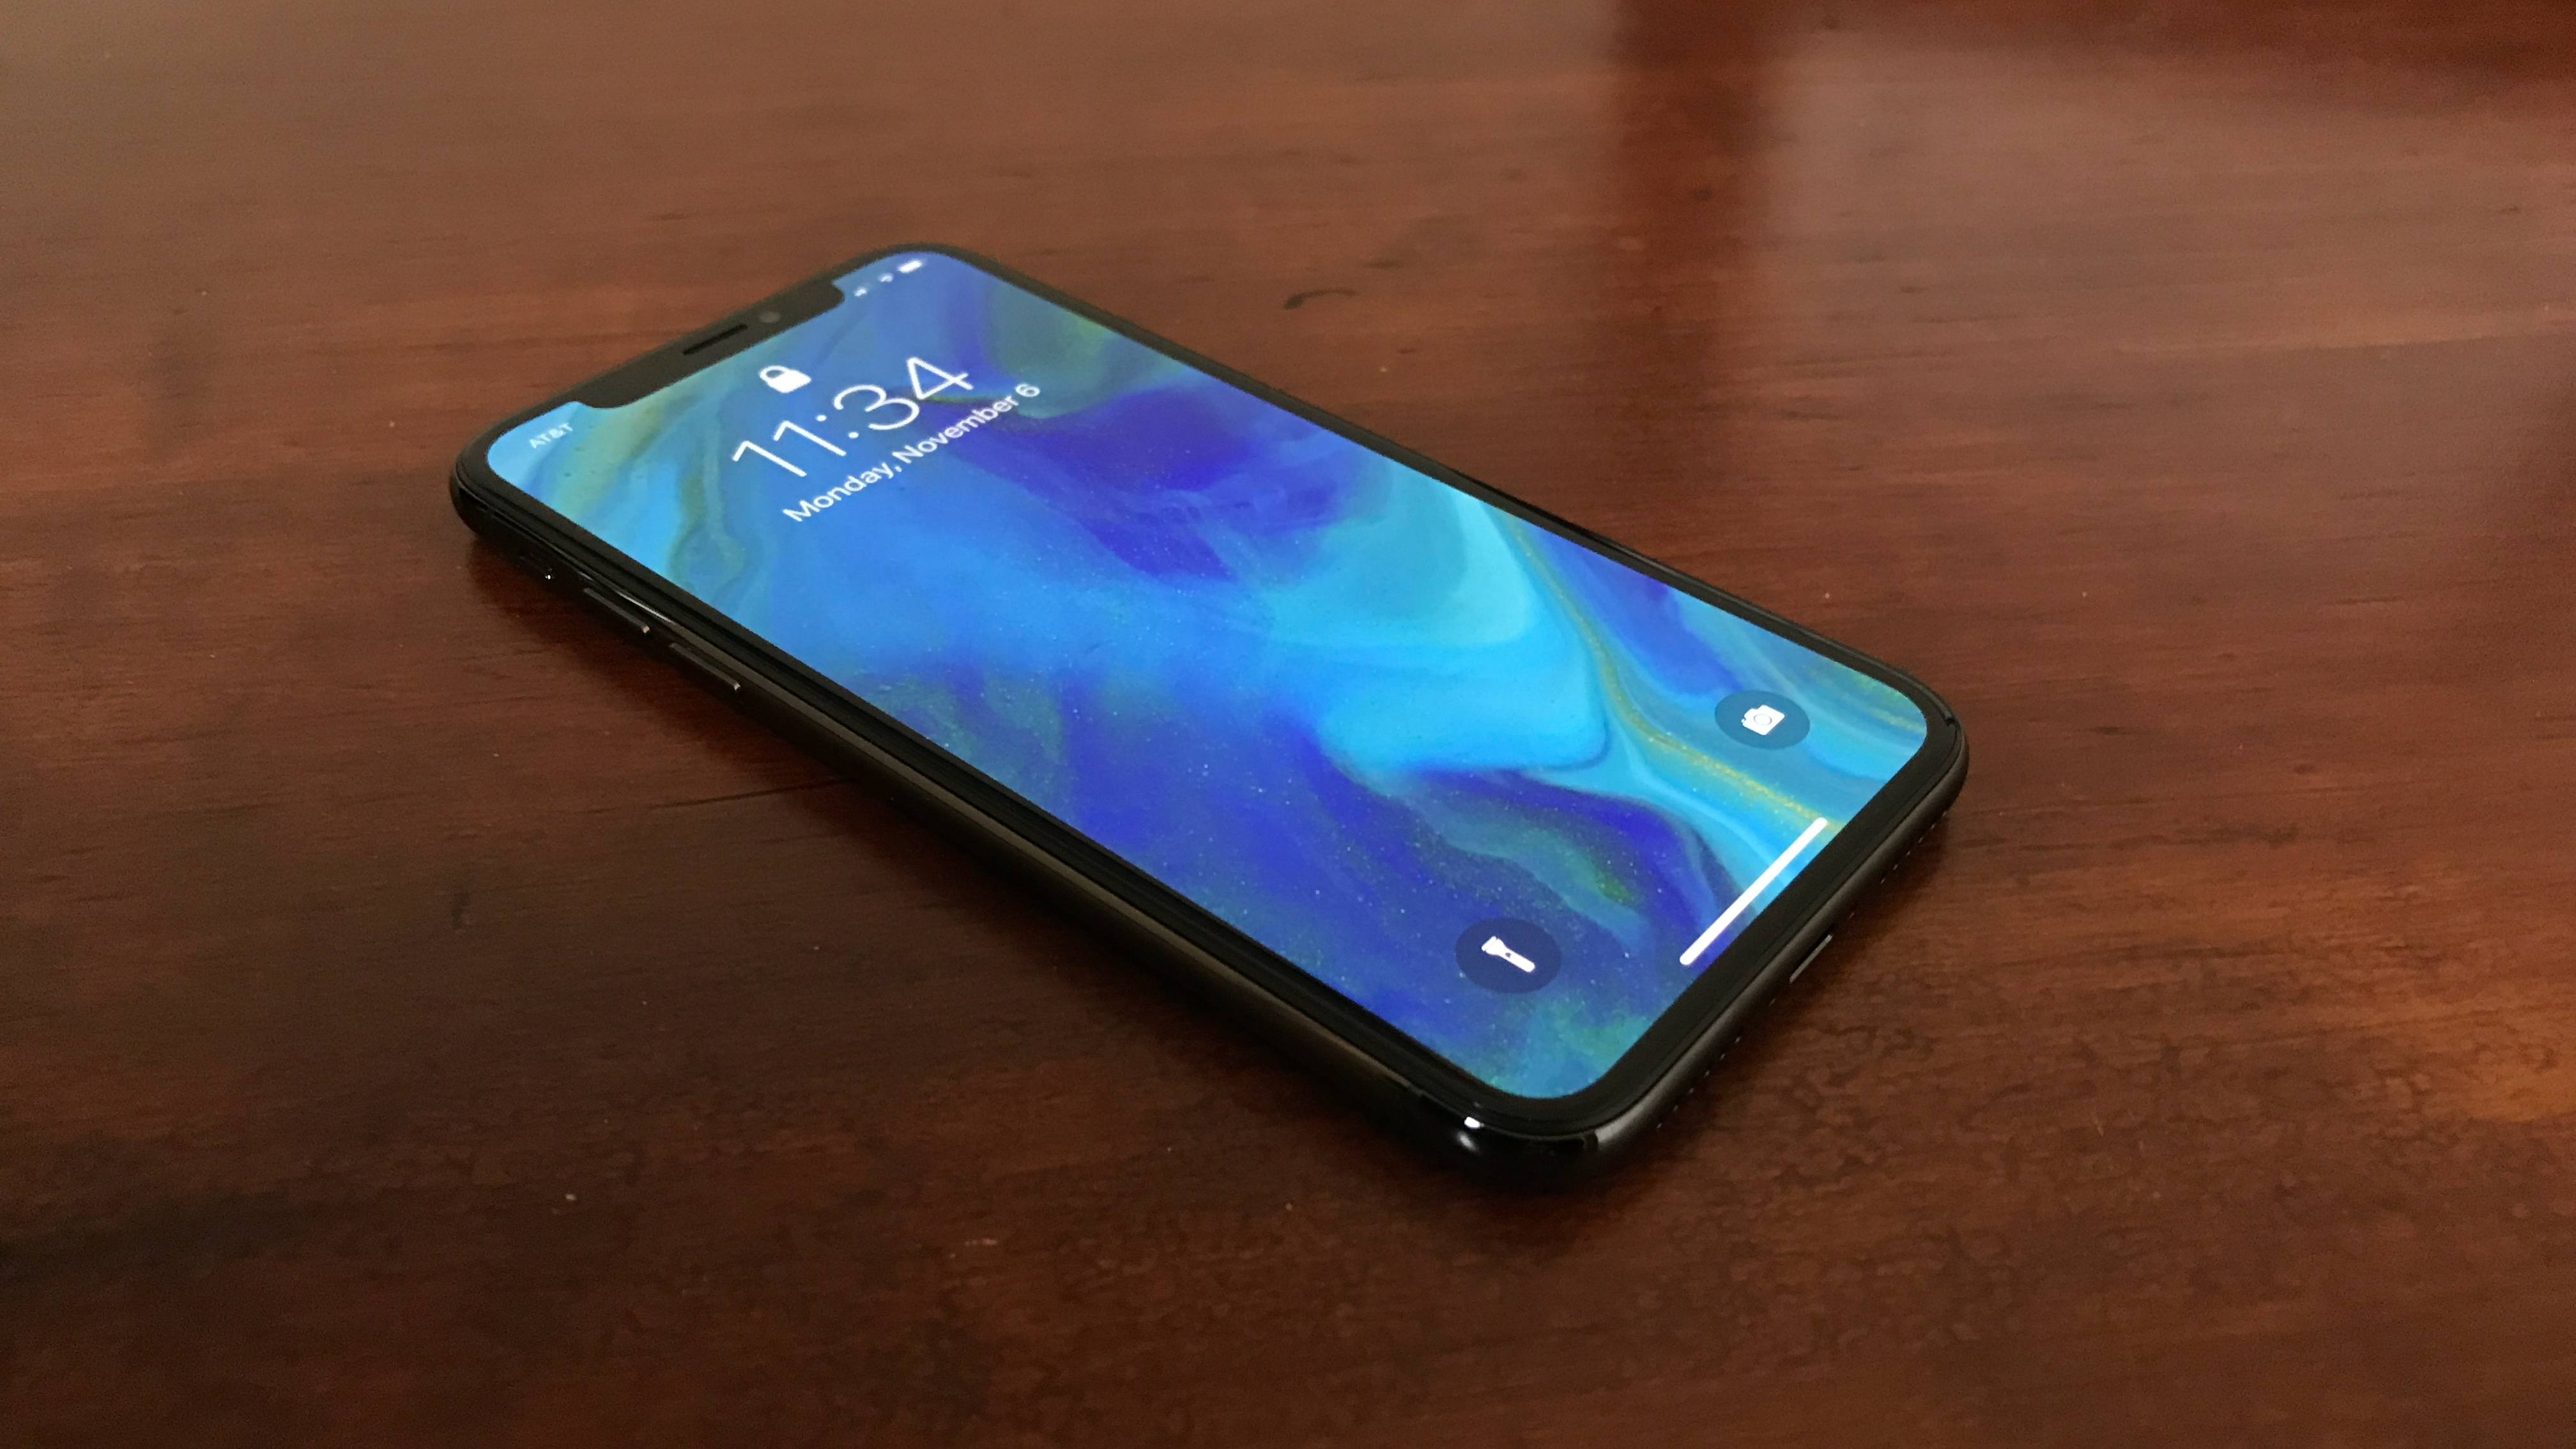 photo image iPhone Reborn: Initial Thoughts on the iPhone X